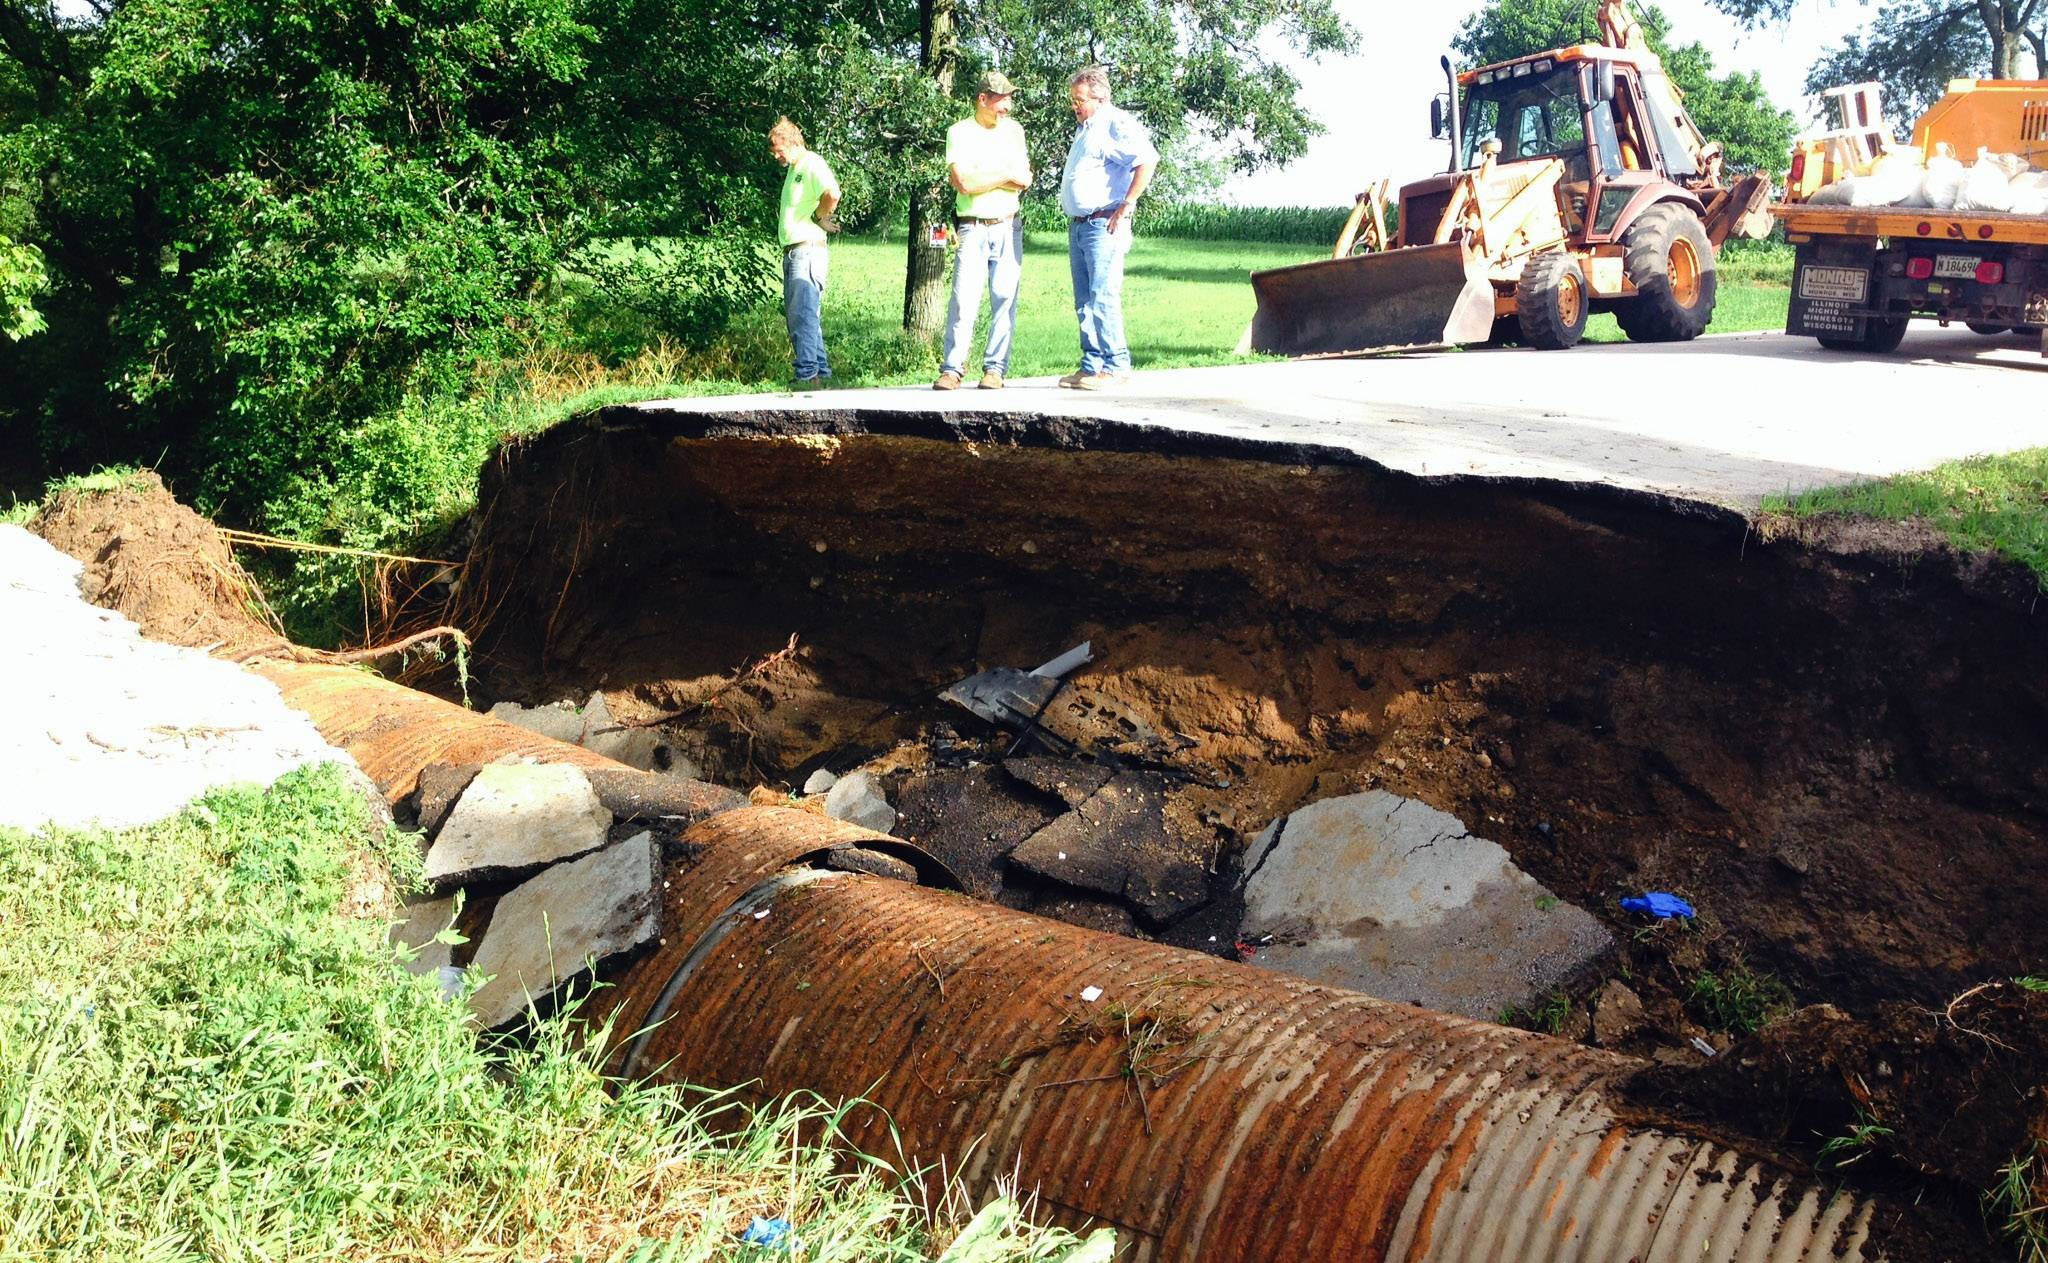 Road crews survey the damage at Thomas and McDonald roads following overnight storms in Kane County.